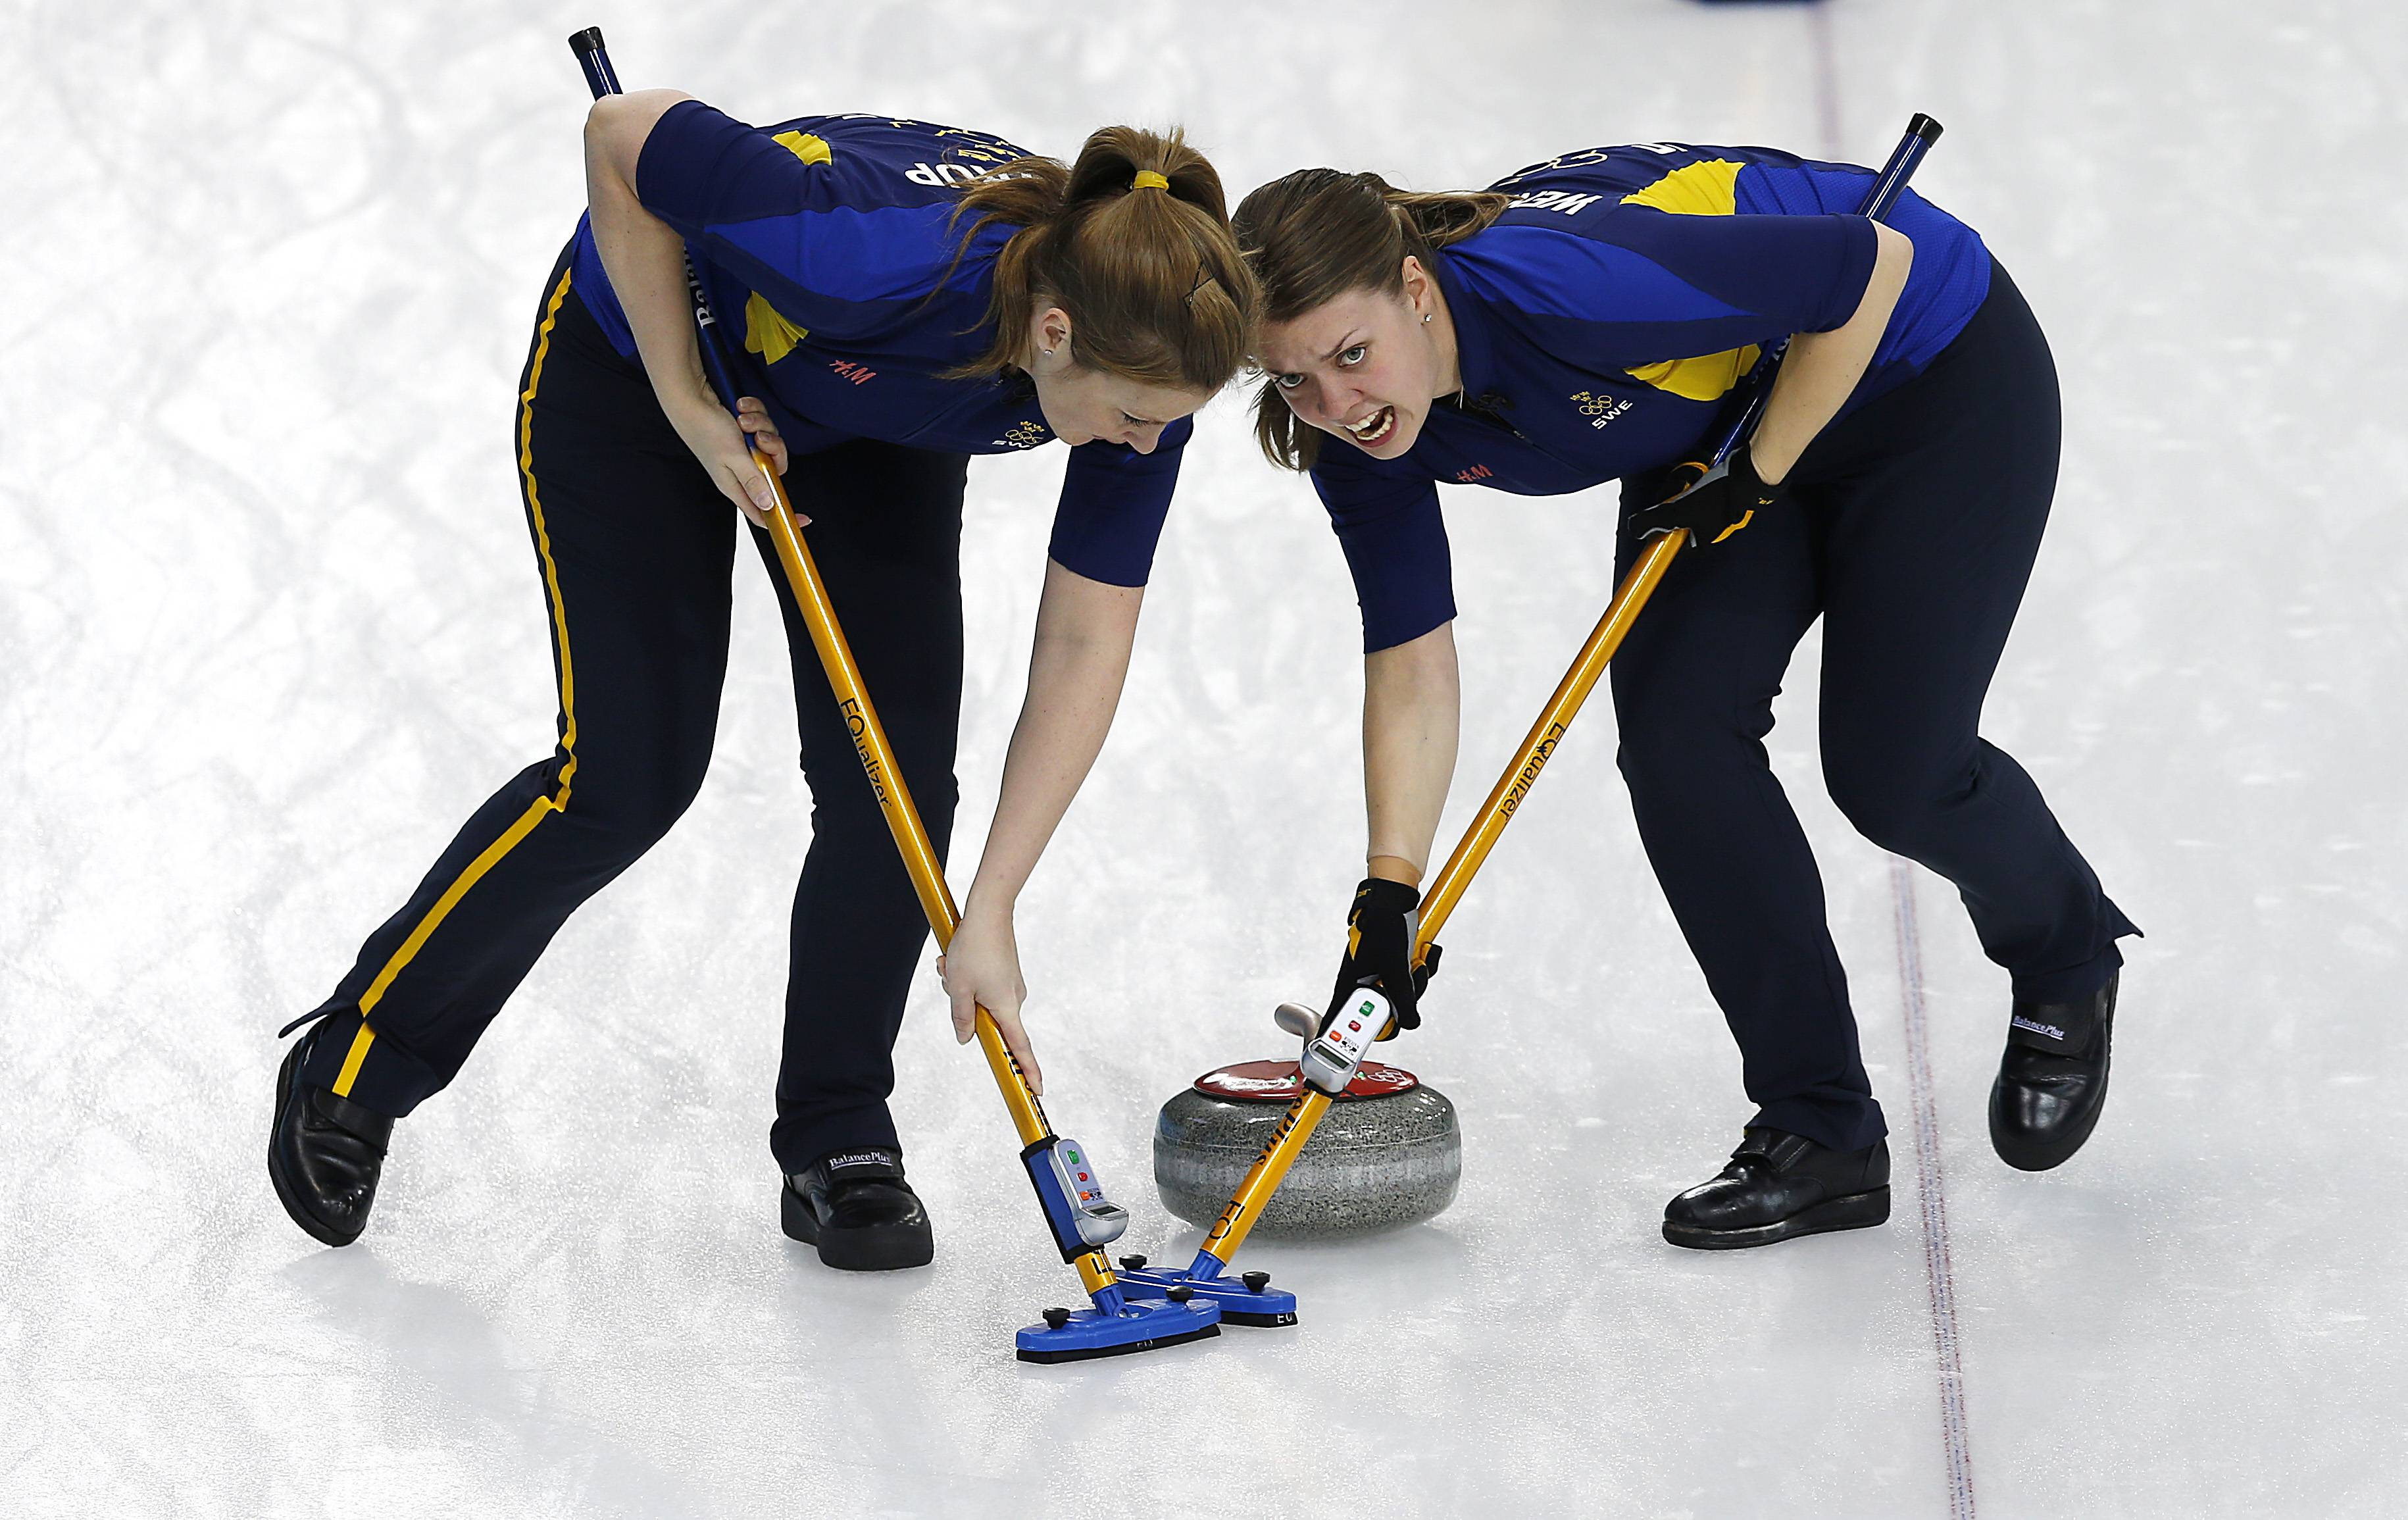 Sweden's Maria Wennerstroem, right and Christina Bertrup, left, sweep the ice during the women's curling competition against Denmark.